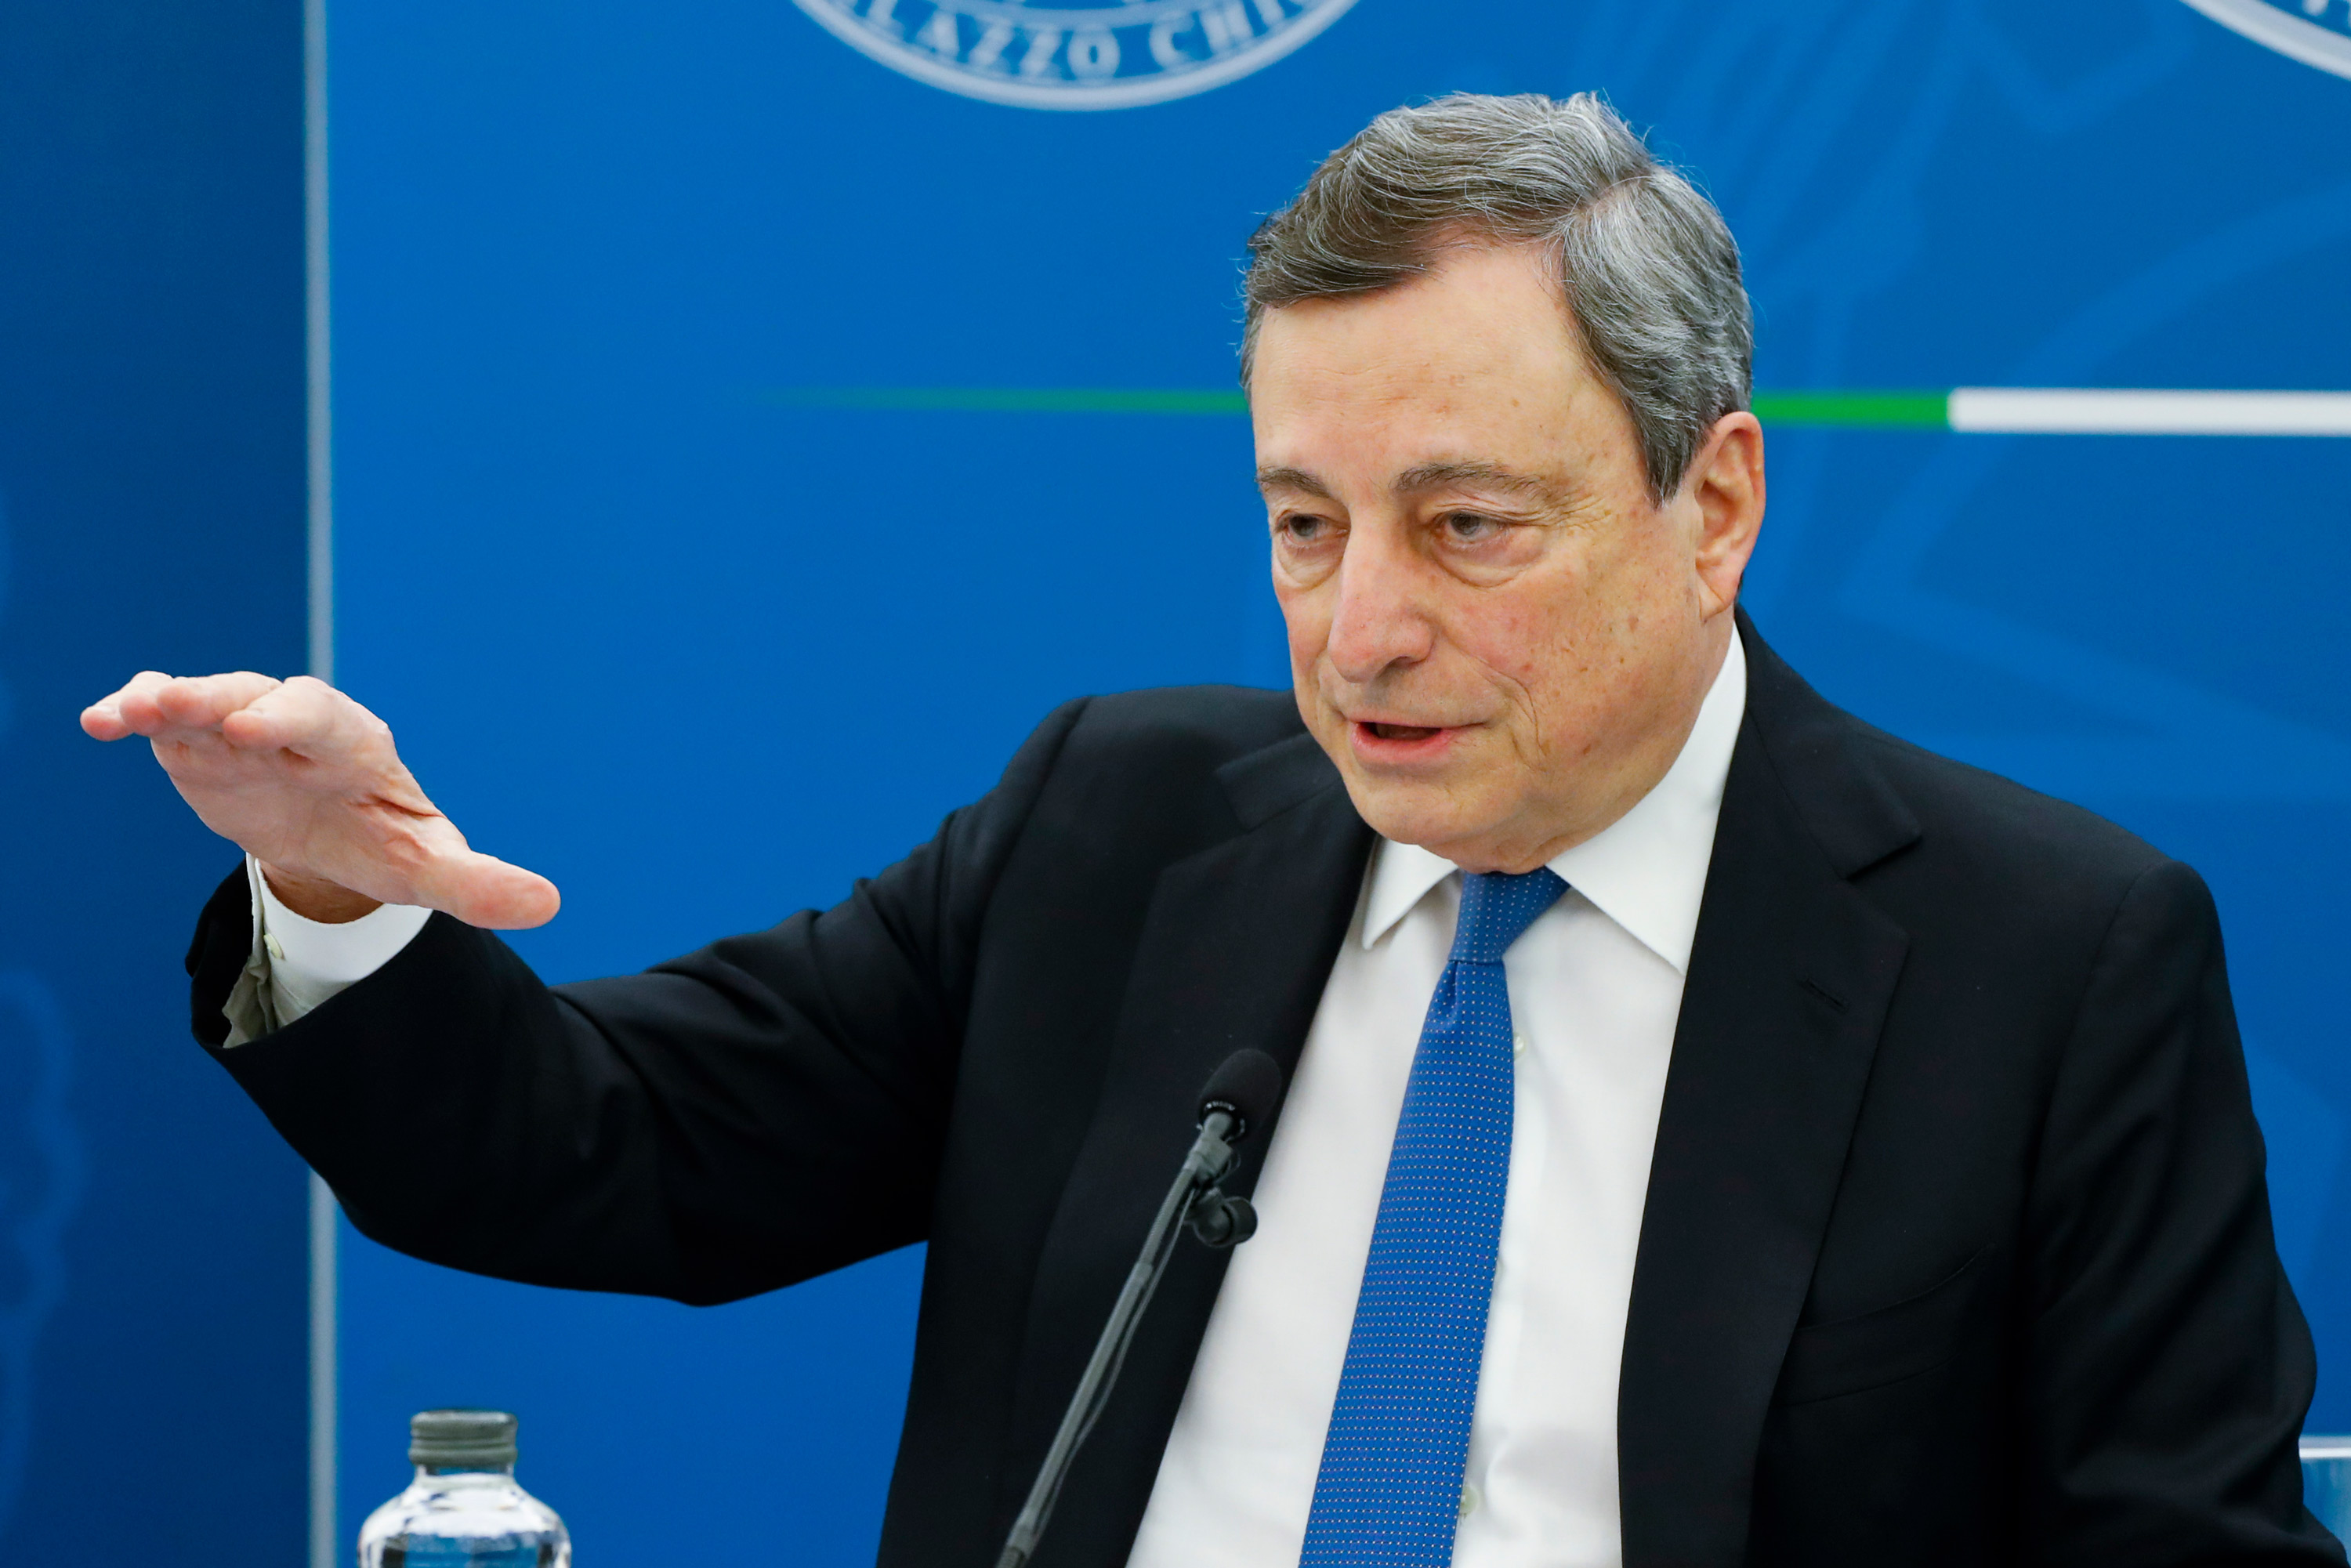 Italian Prime Minister Mario Draghi speaks during a news conference in Rome on April 16.